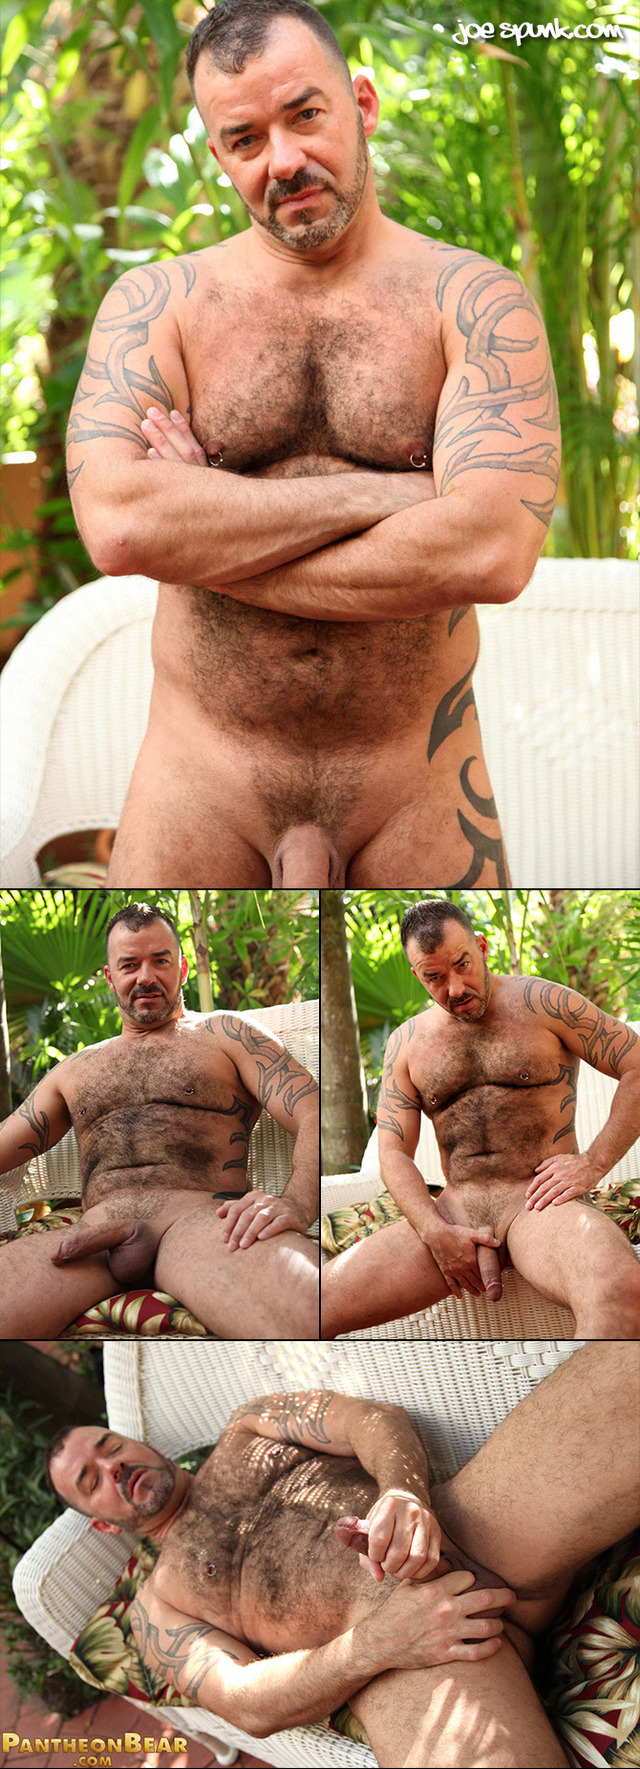 hairy naked muscle men muscle bear collages day king steve pantheonbear